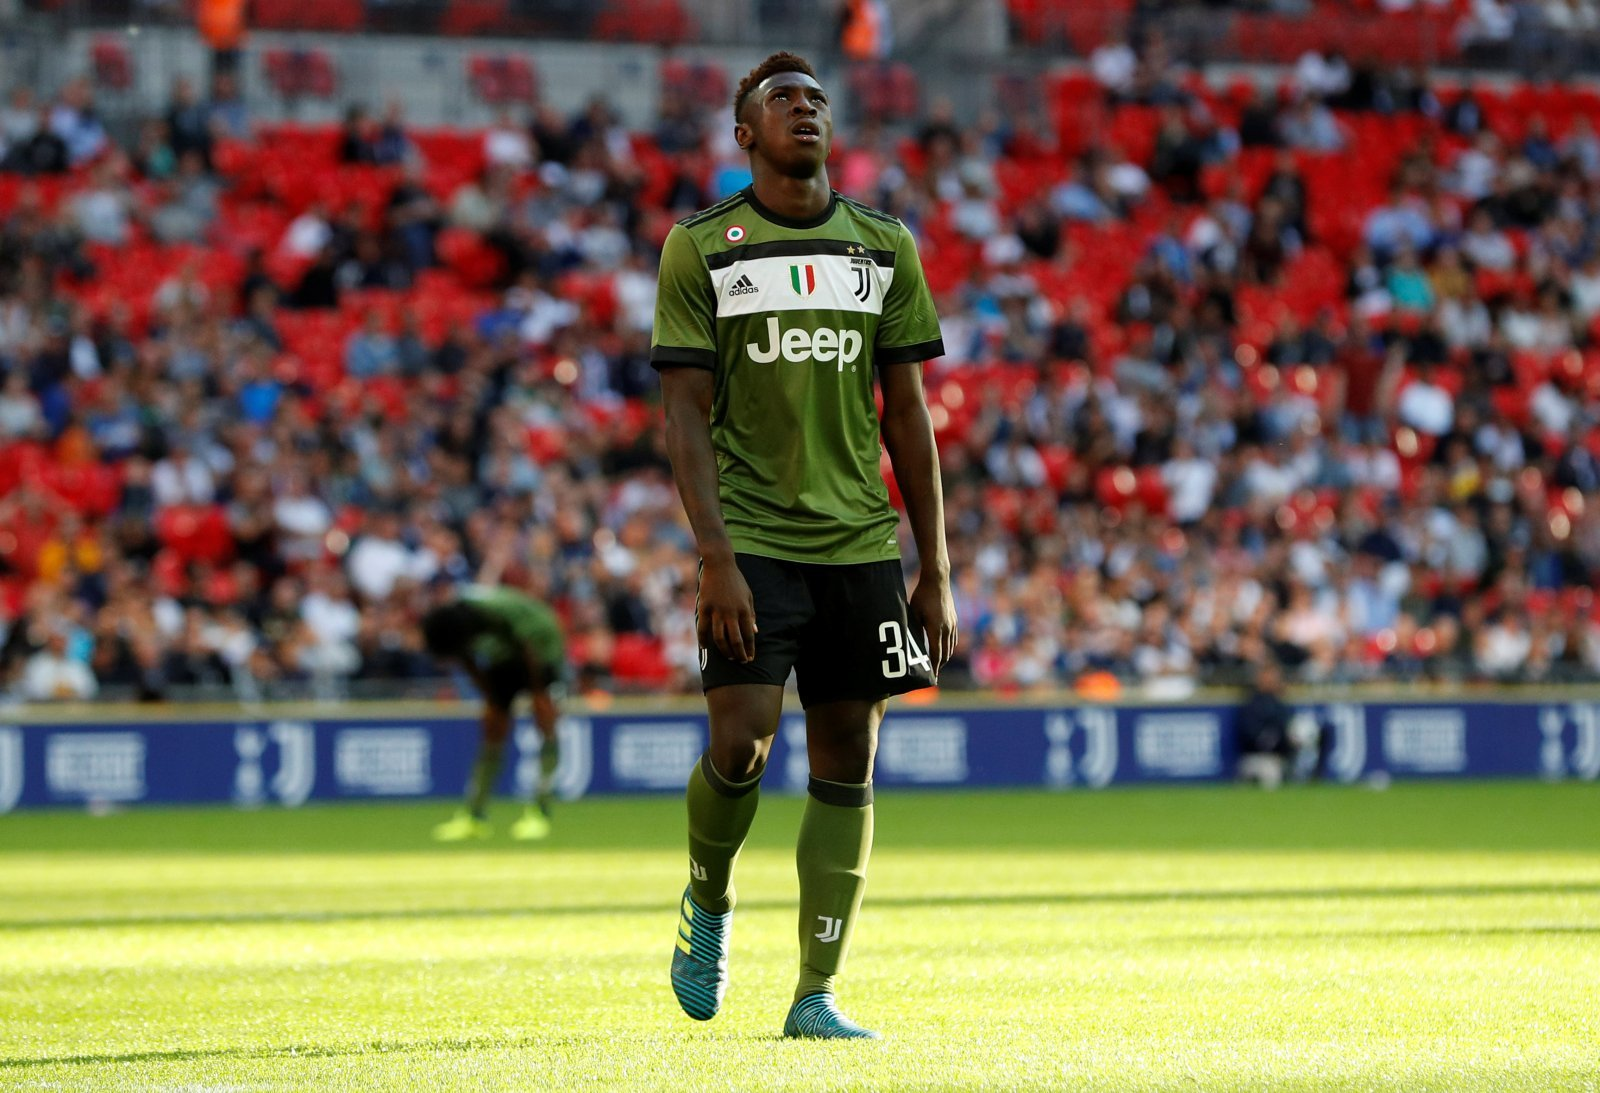 Moise Kean found the opportunity to play for Leeds 'tempting'